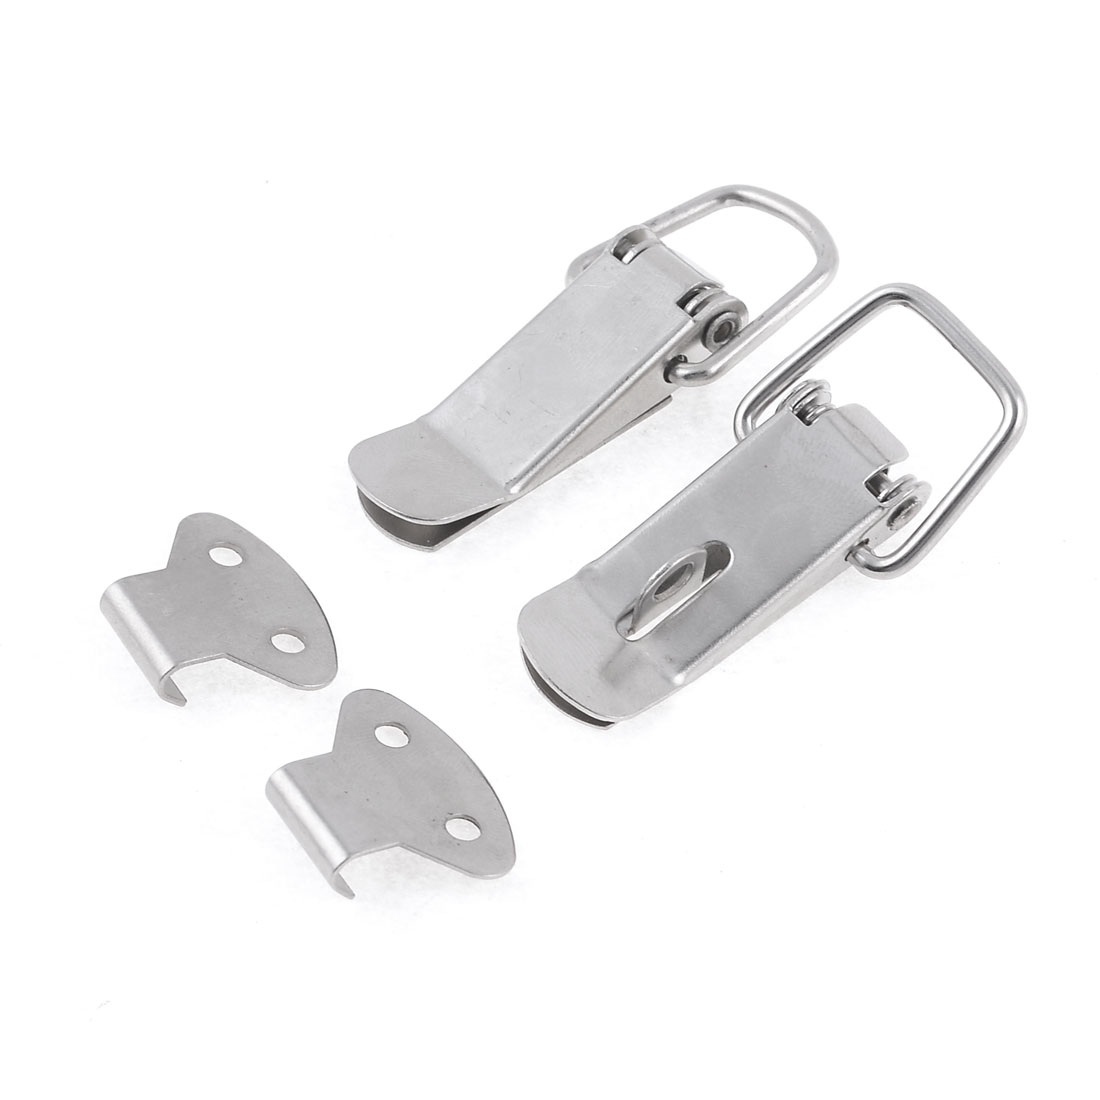 2 Pcs Boxes Case Silver Tone Spring Loaded Toggle Latch Hasp